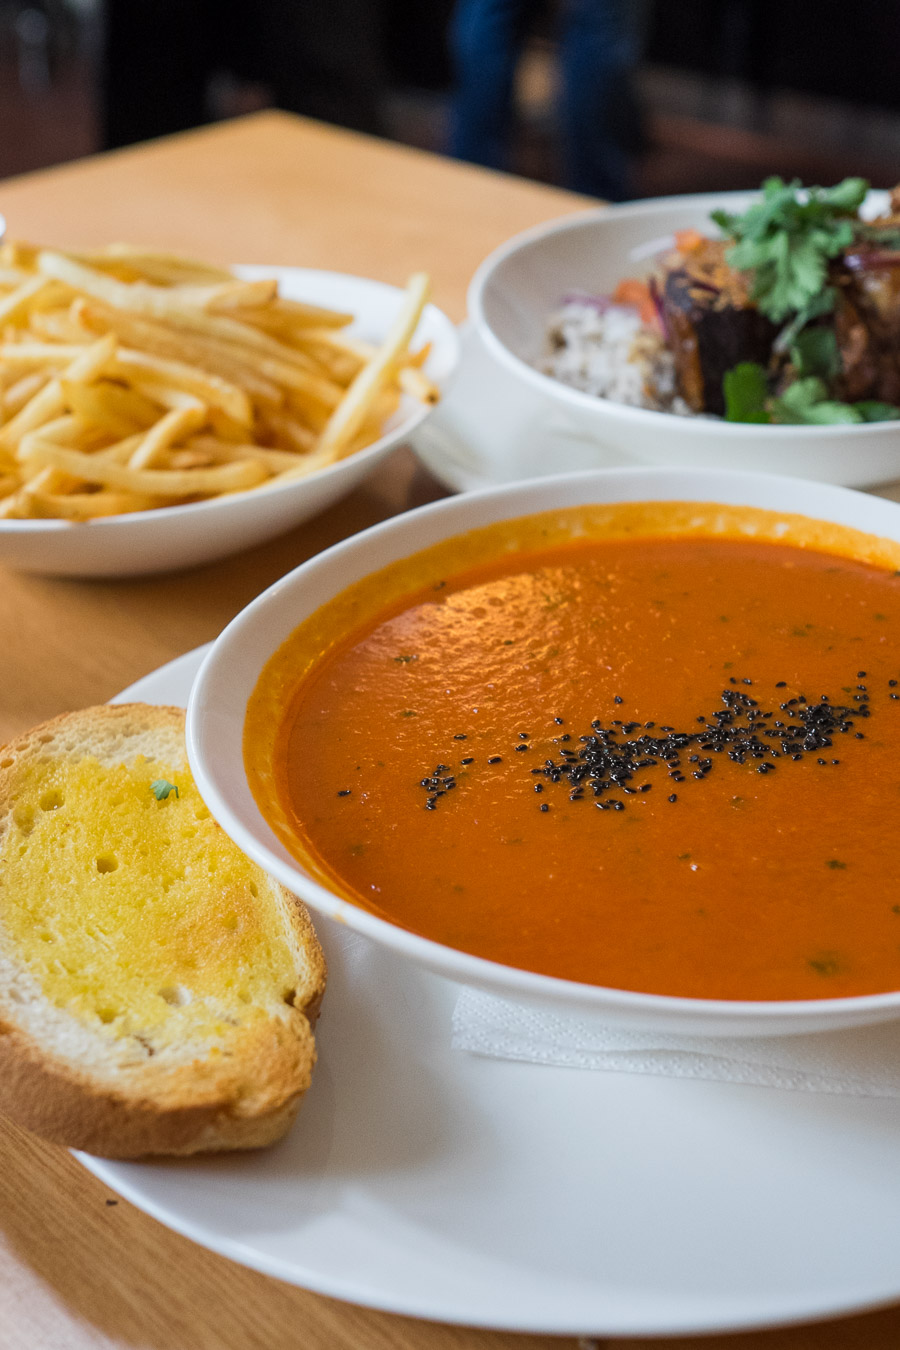 Soup of the day (tomato, garlic and basil) with toasted bread